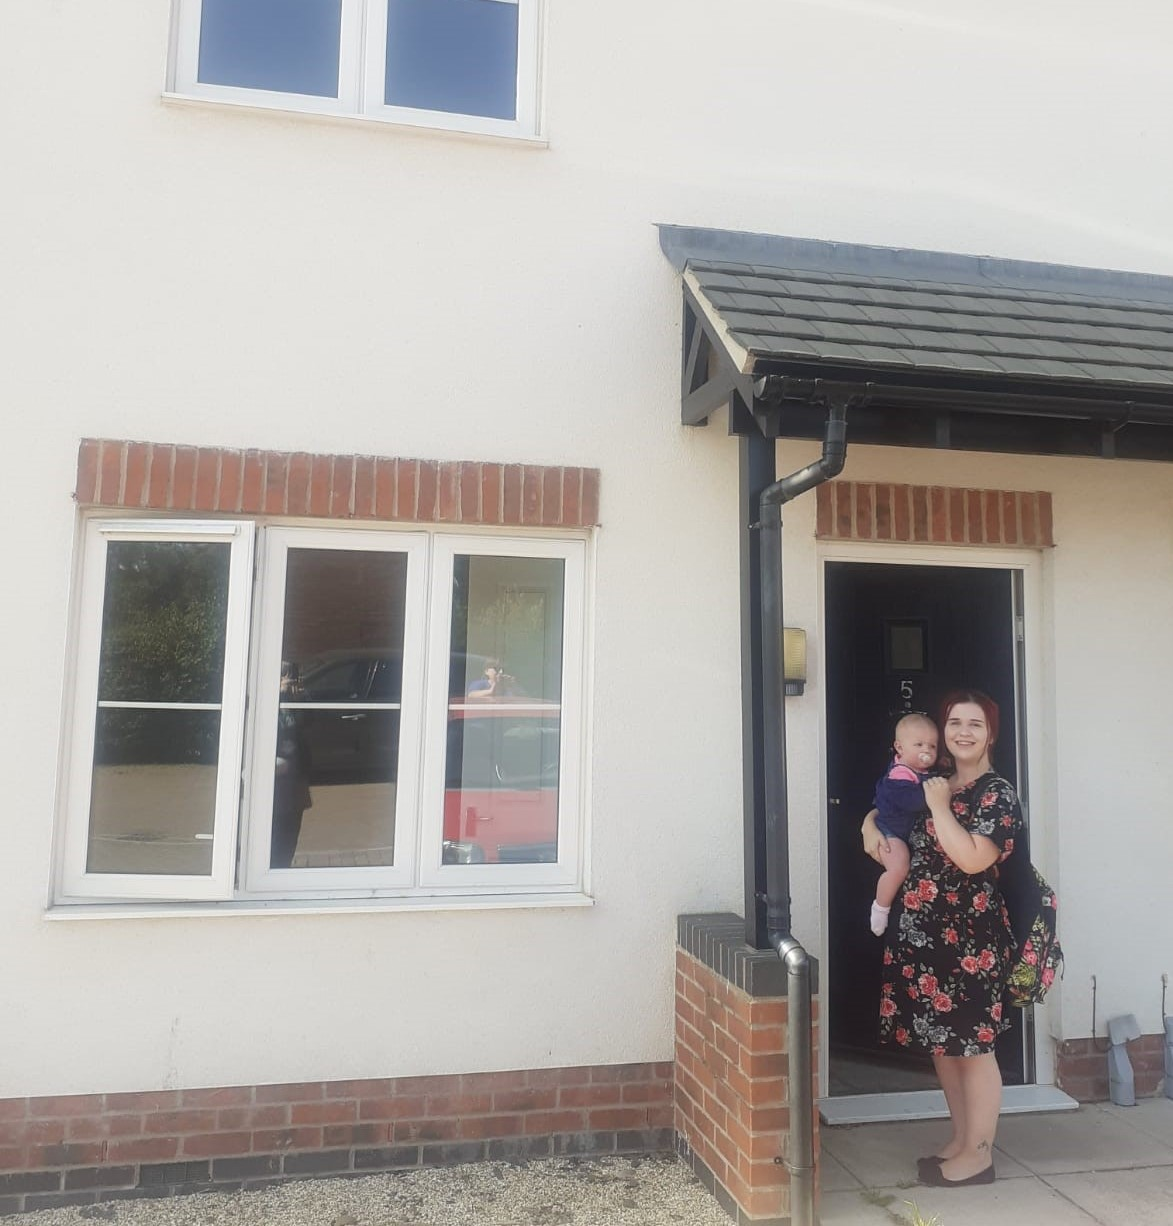 Leanne and daughter outside new home